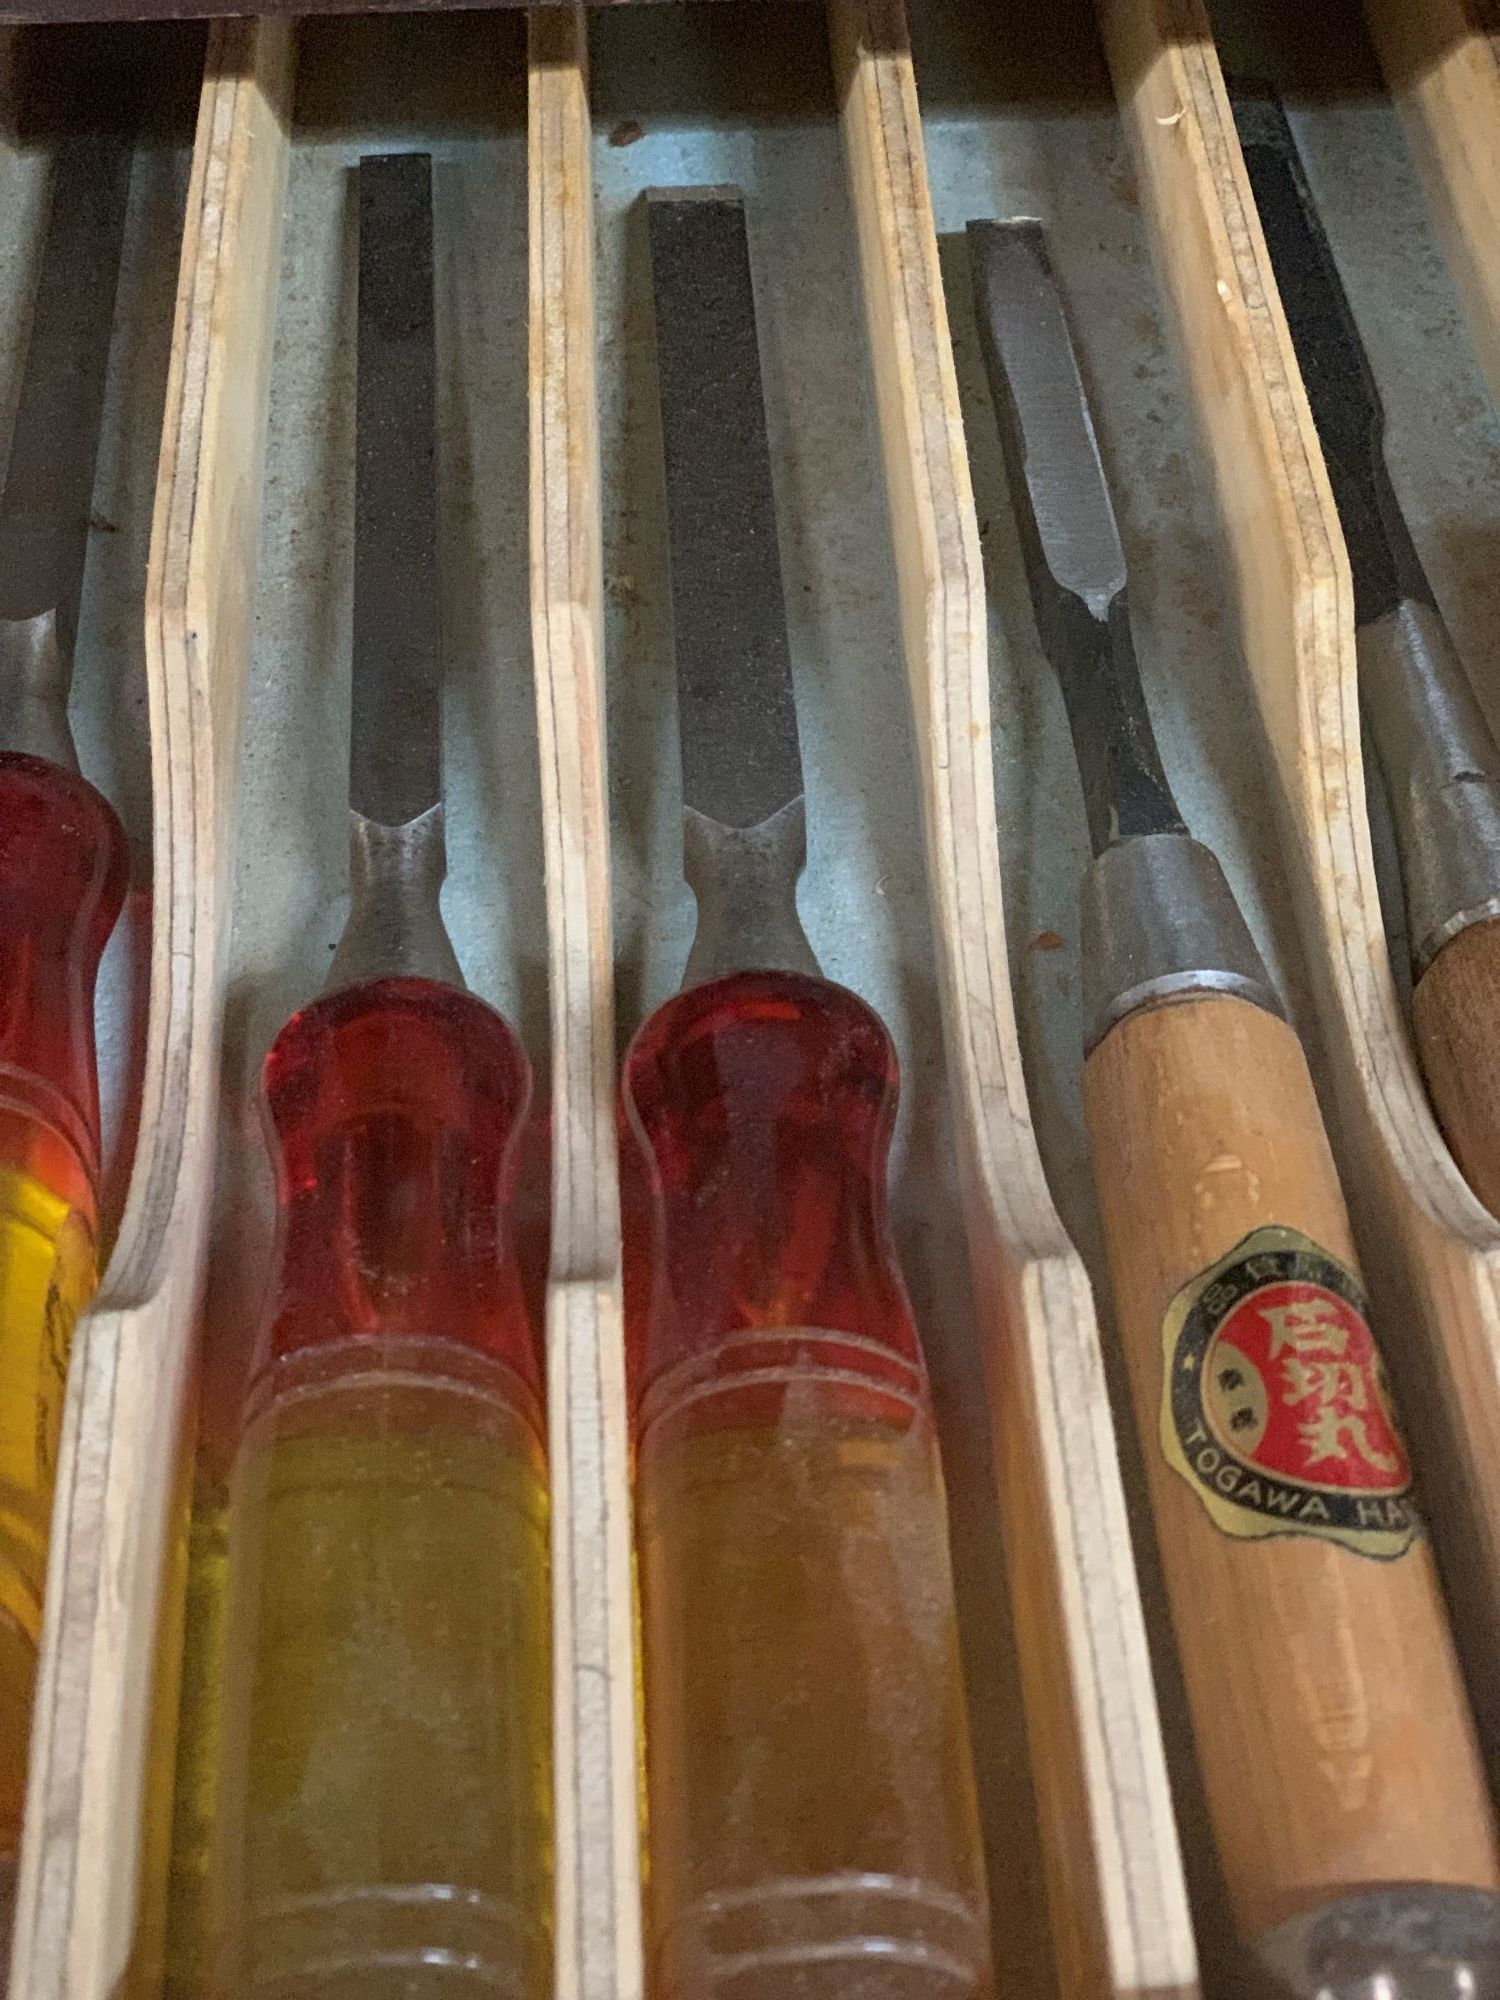 A mix of English and Japanese mortice chisels which Stuart has had for over 32 years and are still going strong.